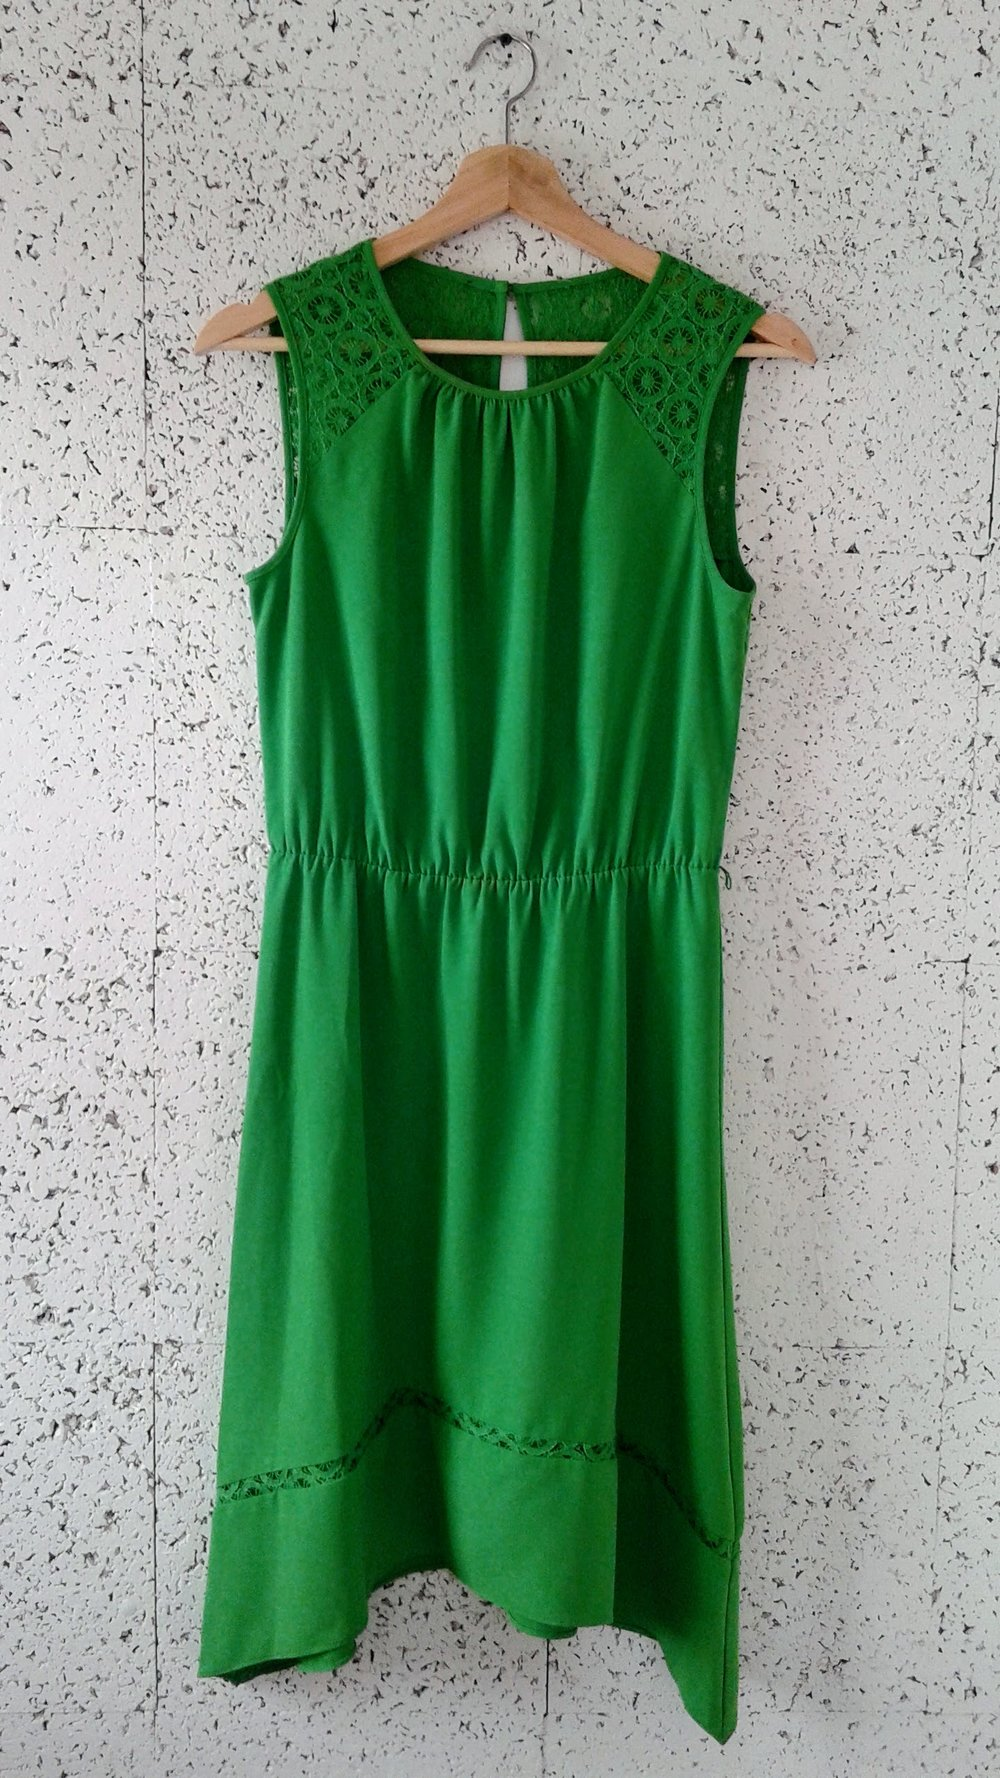 Emerald dress; Size M, $34